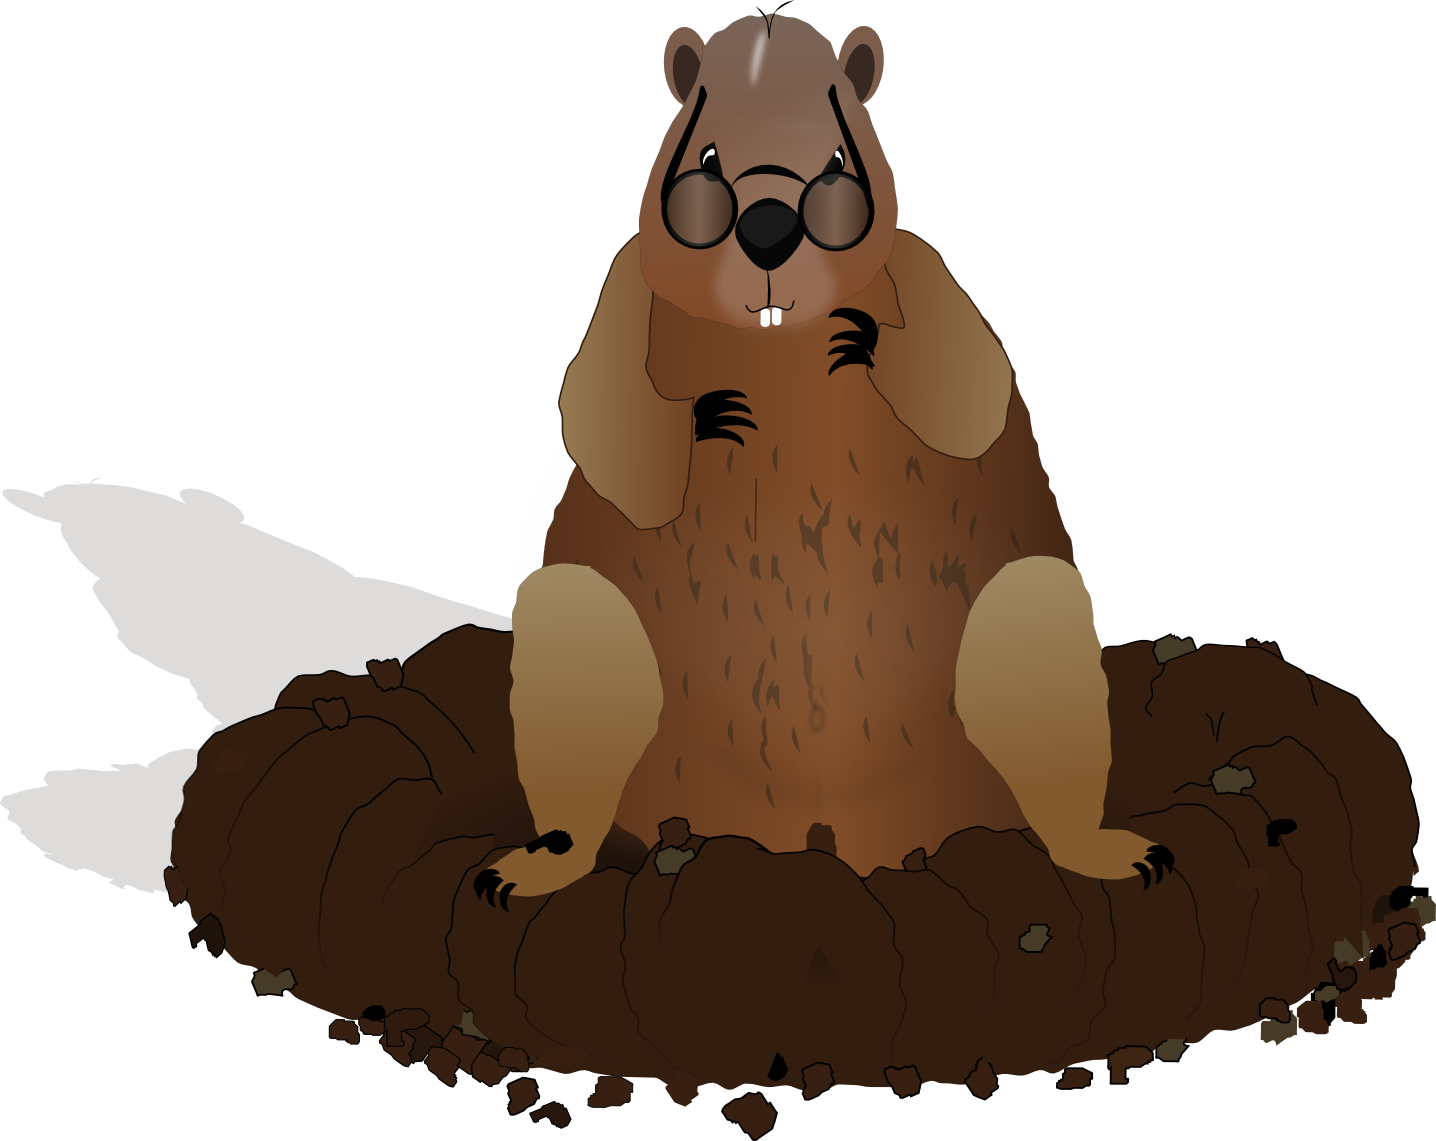 Groundhog images clipart free download clip art